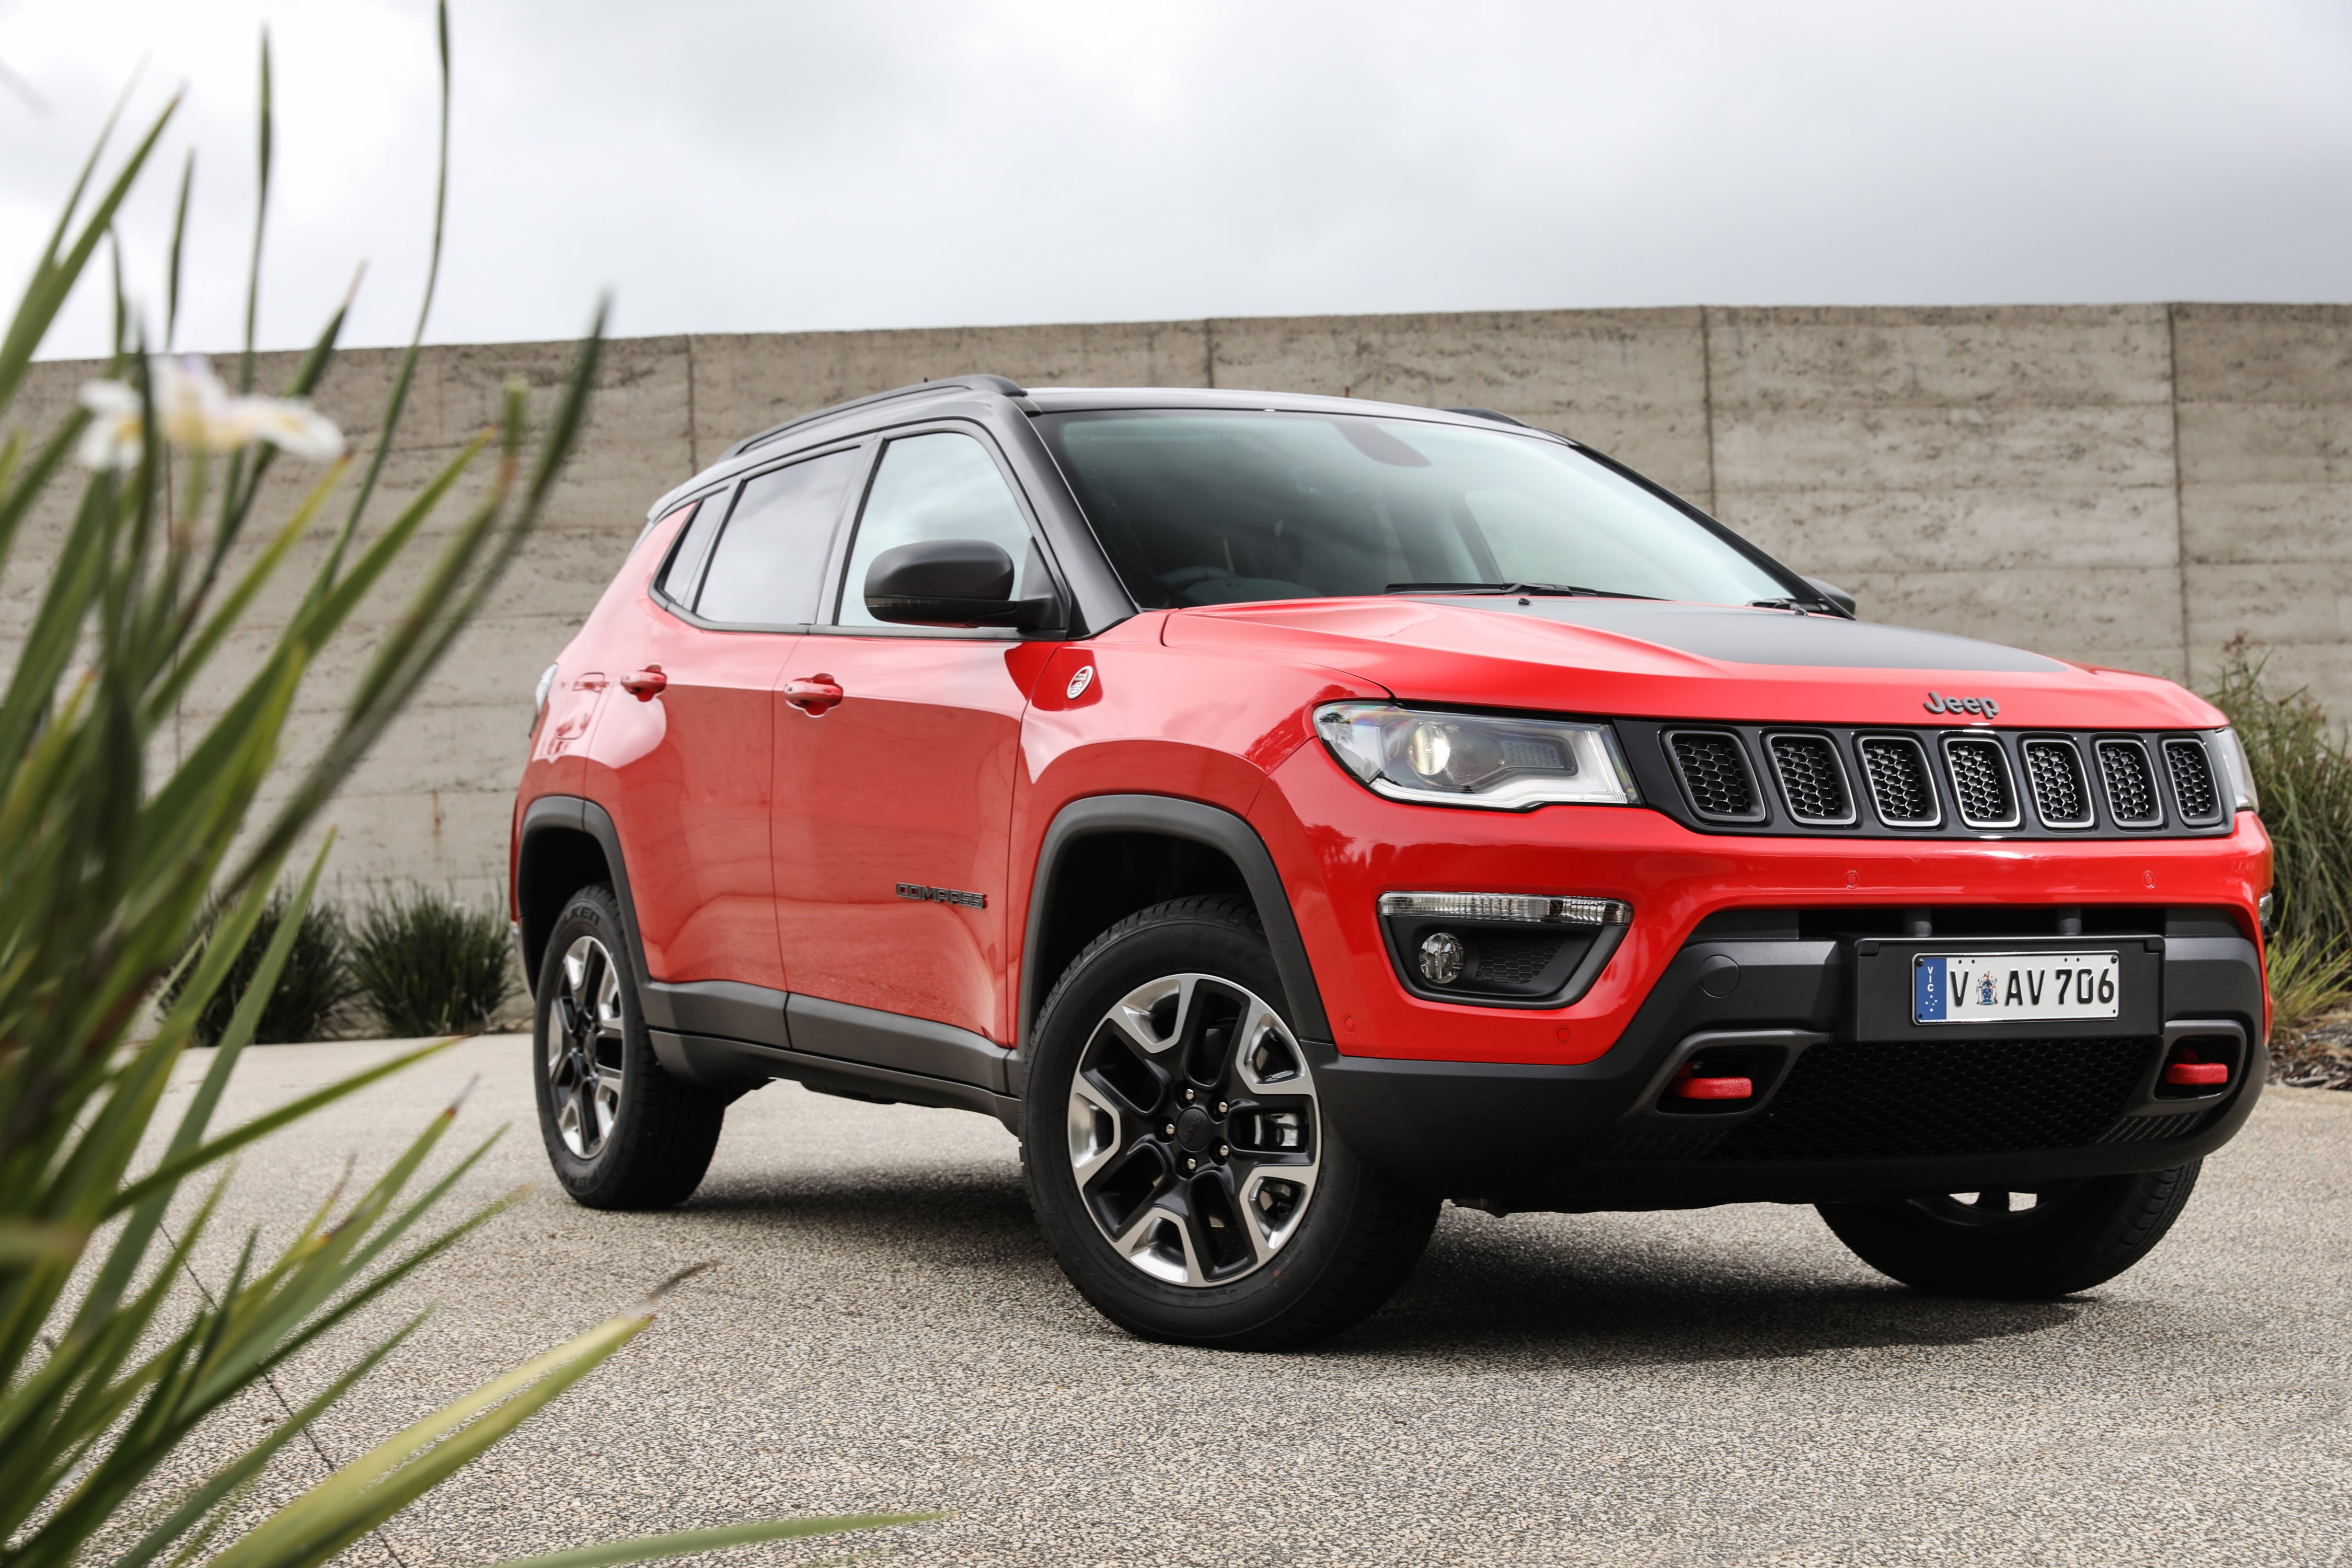 Jeep Australia Readying Fightback, After Shocking Few